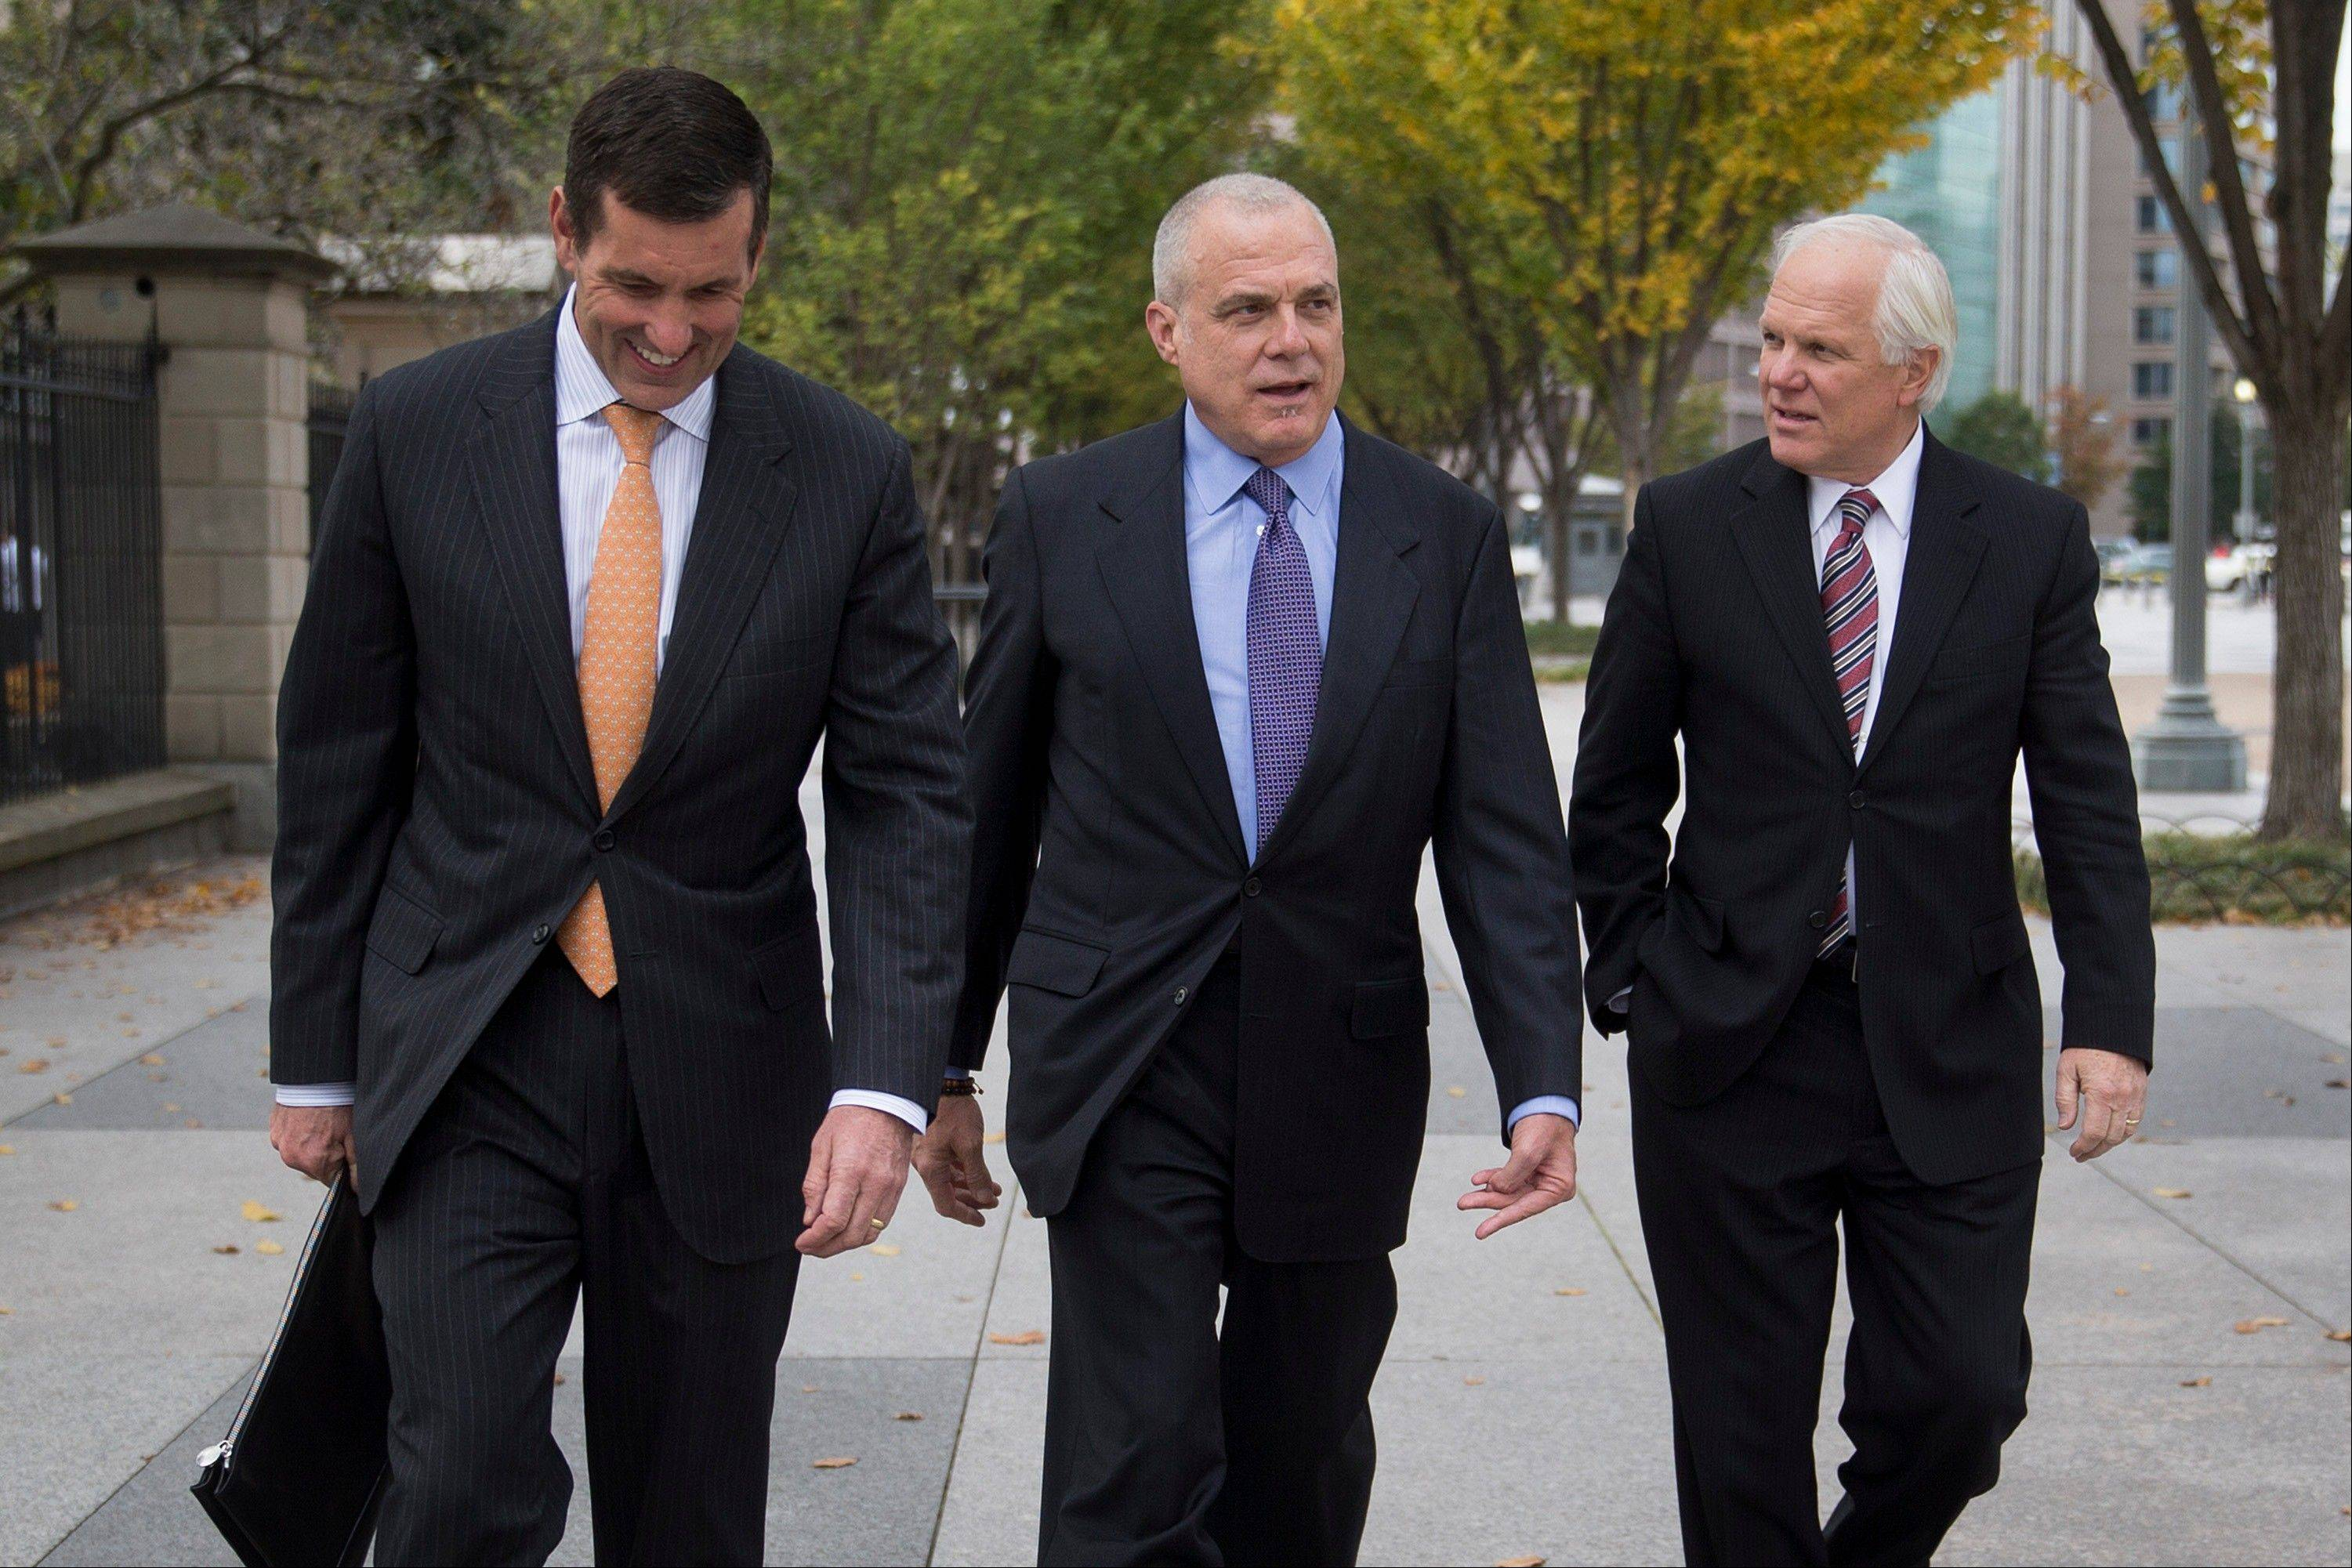 "Bruce Broussard, chief executive officer of Humana Inc., from left, Mark Bertolini, chairman, president and chief executive officer of Aetna Inc., and Joseph ""Joe"" Swedish, chief executive officer of Wellpoint Inc., walk Wednesday toward the White House. Health insurance executives met with top White House officials over the troubled online enrollment program."